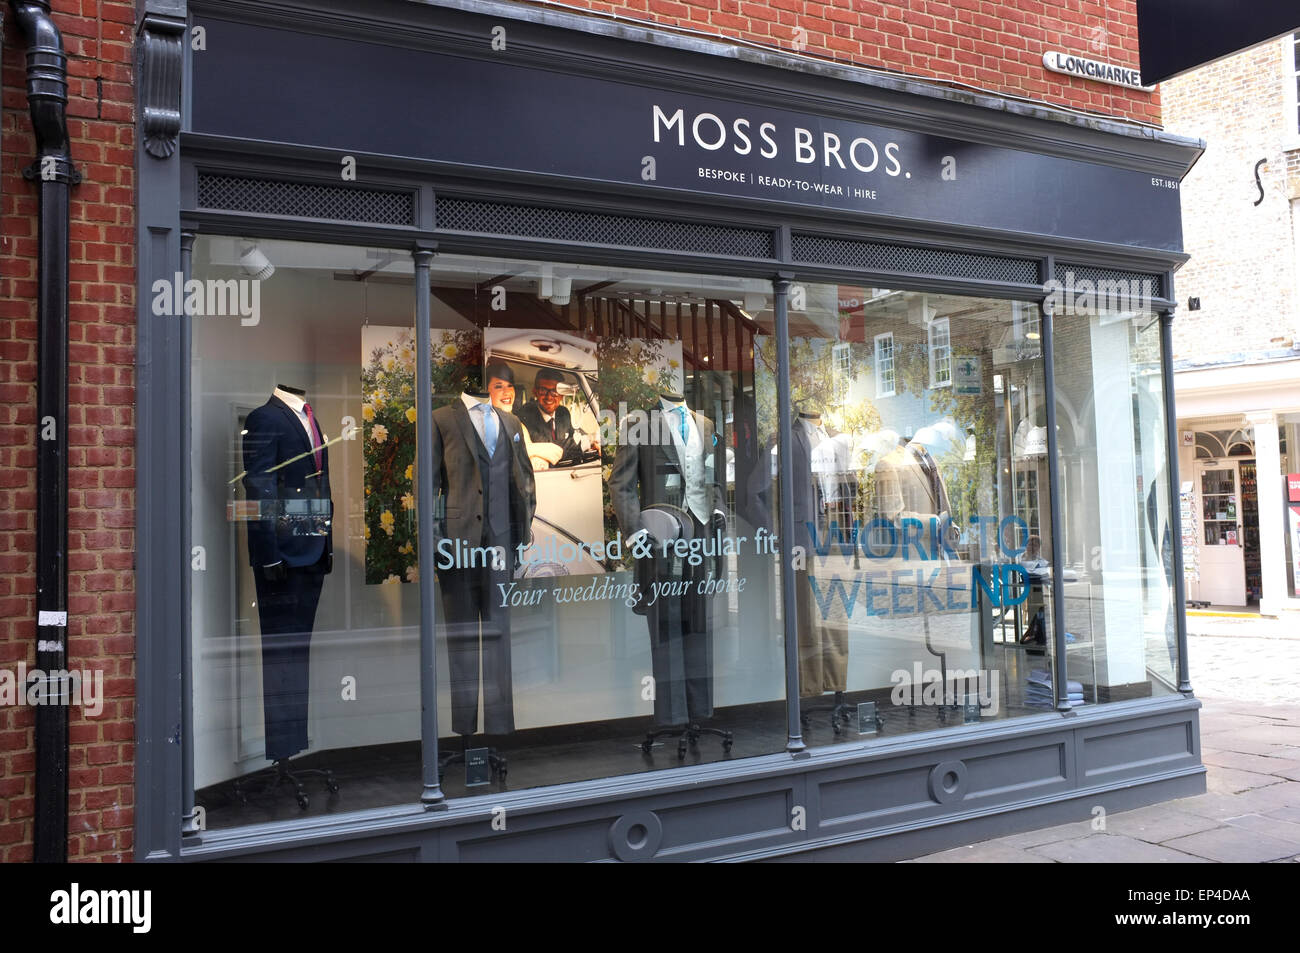 moss bros menswear retail store in the city of canterbury kent uk may 2015 - Stock Image